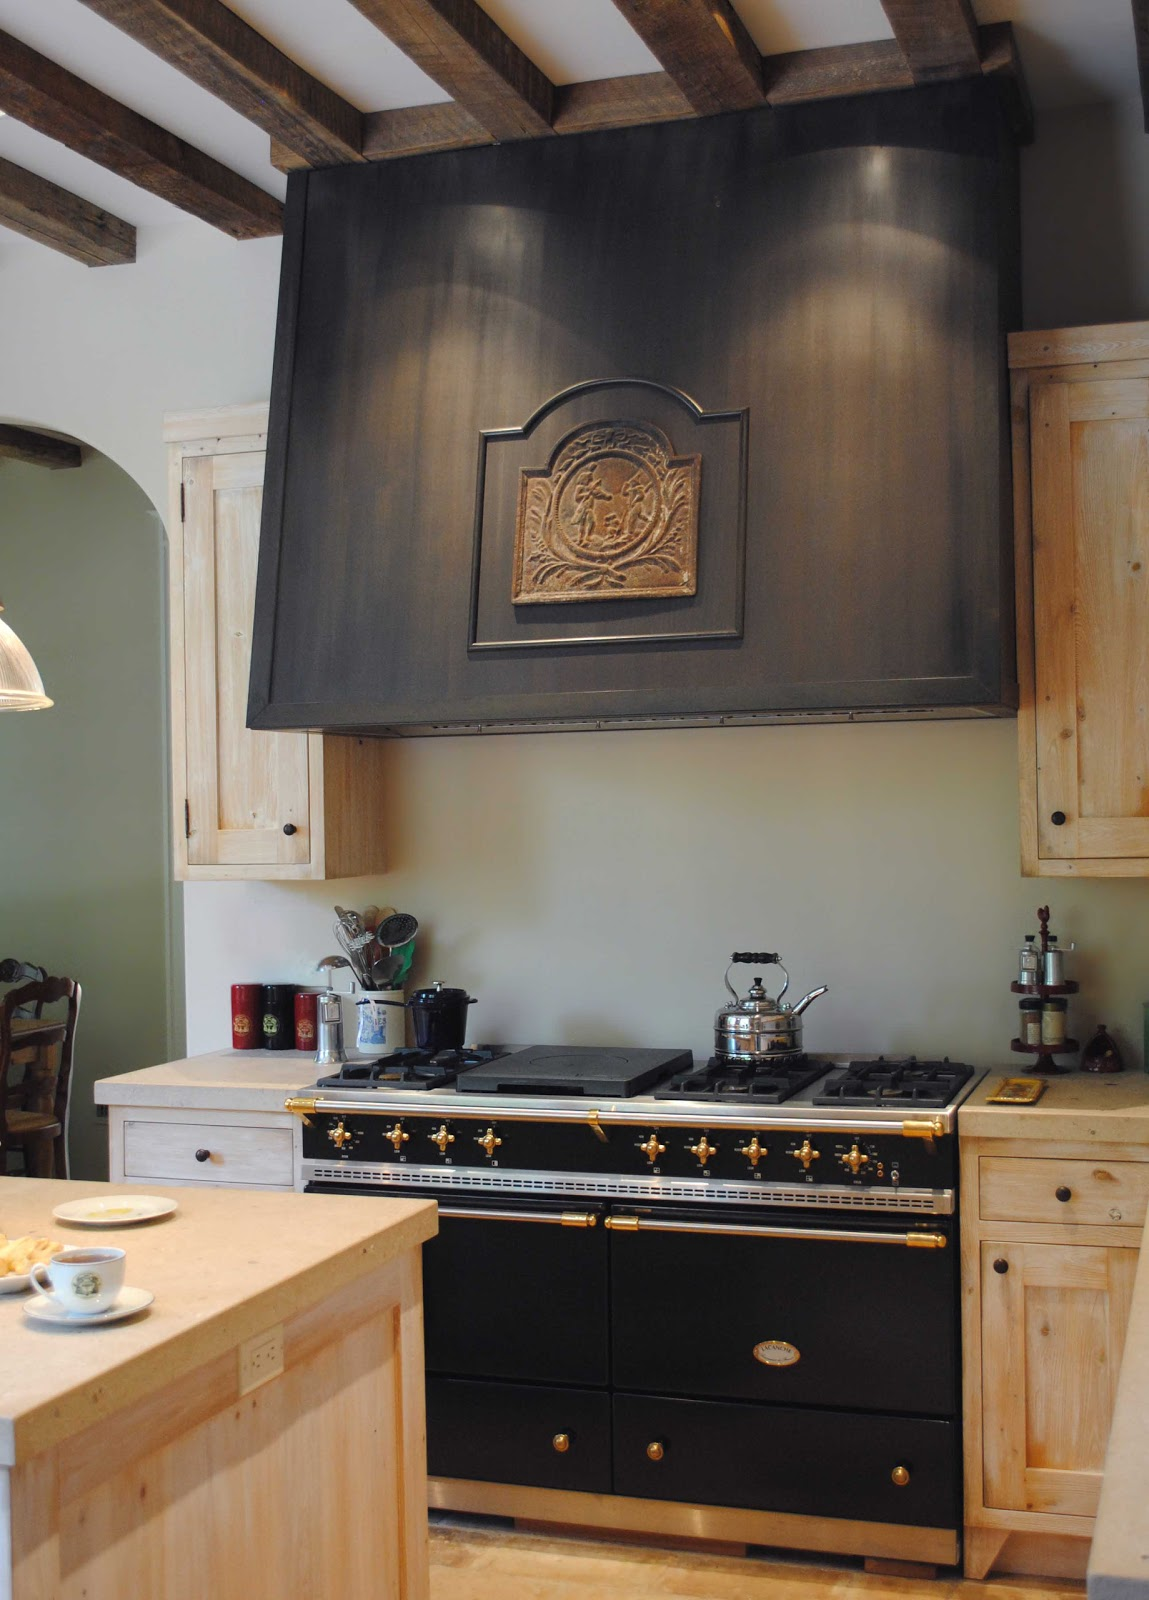 Tone on Tone: Old and New in Fixing Stove Hoods To Keep Pollution Out Of The Kitchen : The Salt Renovation - Kitchen Stove Vents